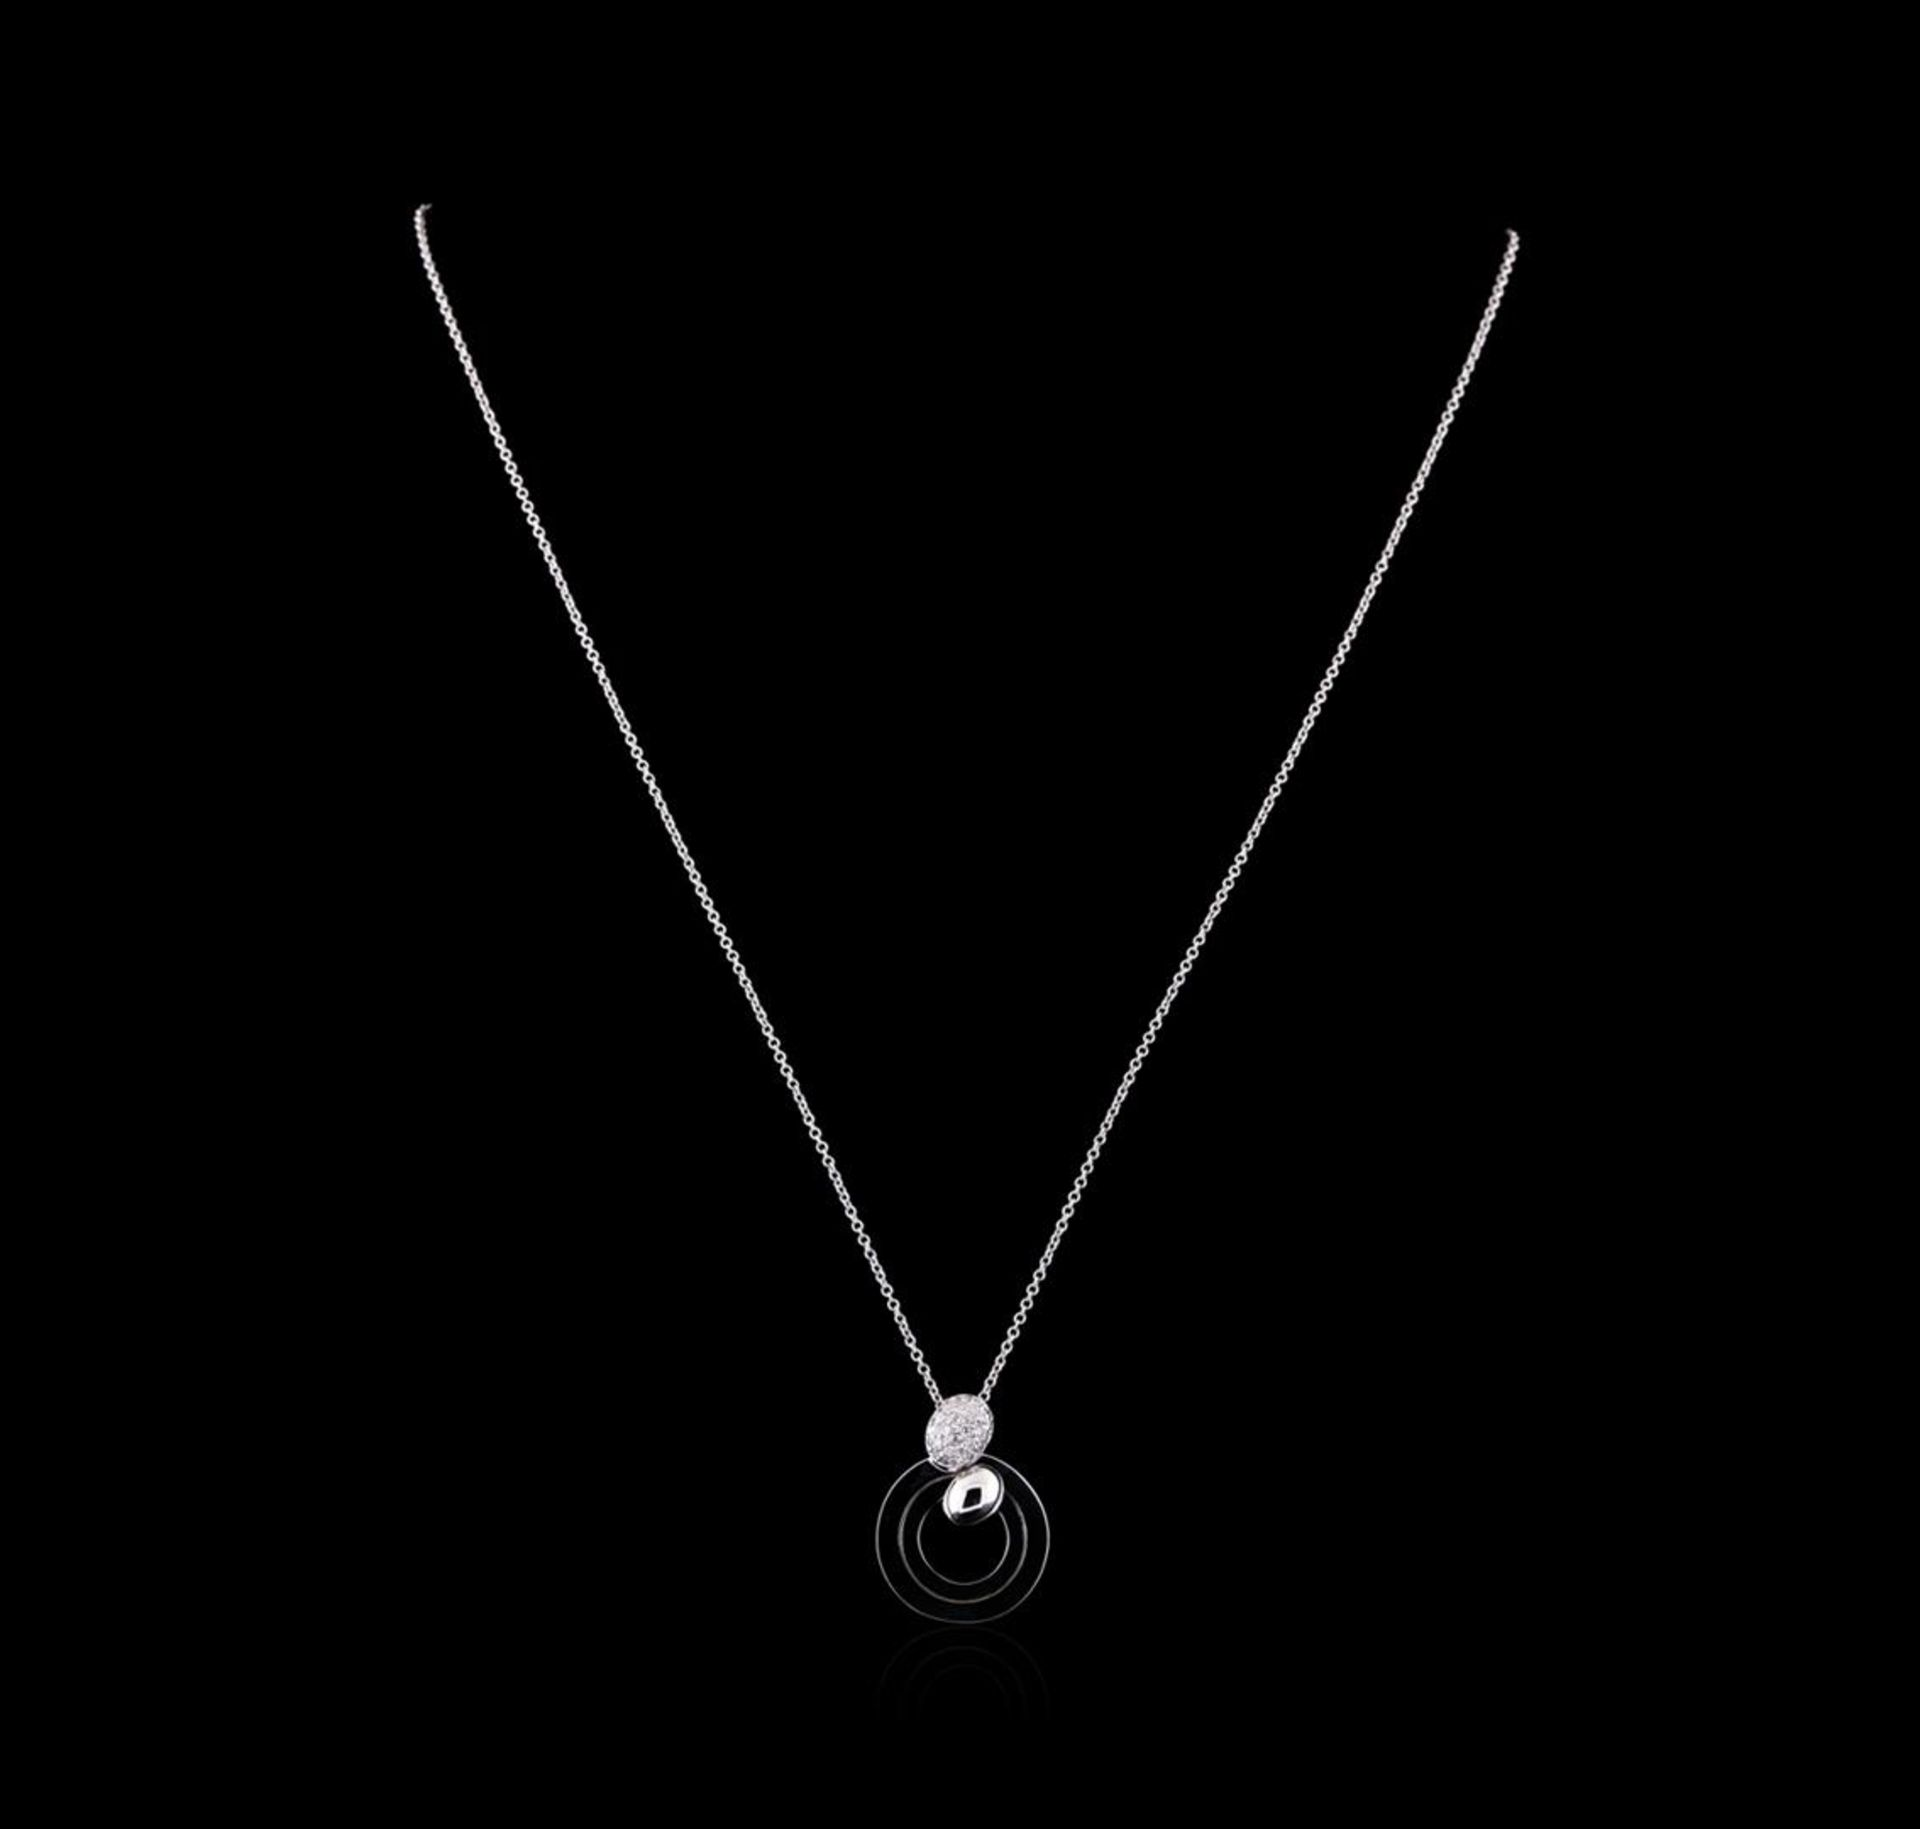 0.25 ctw Diamond Pendant with Chain - 14KT White Gold - Image 2 of 2